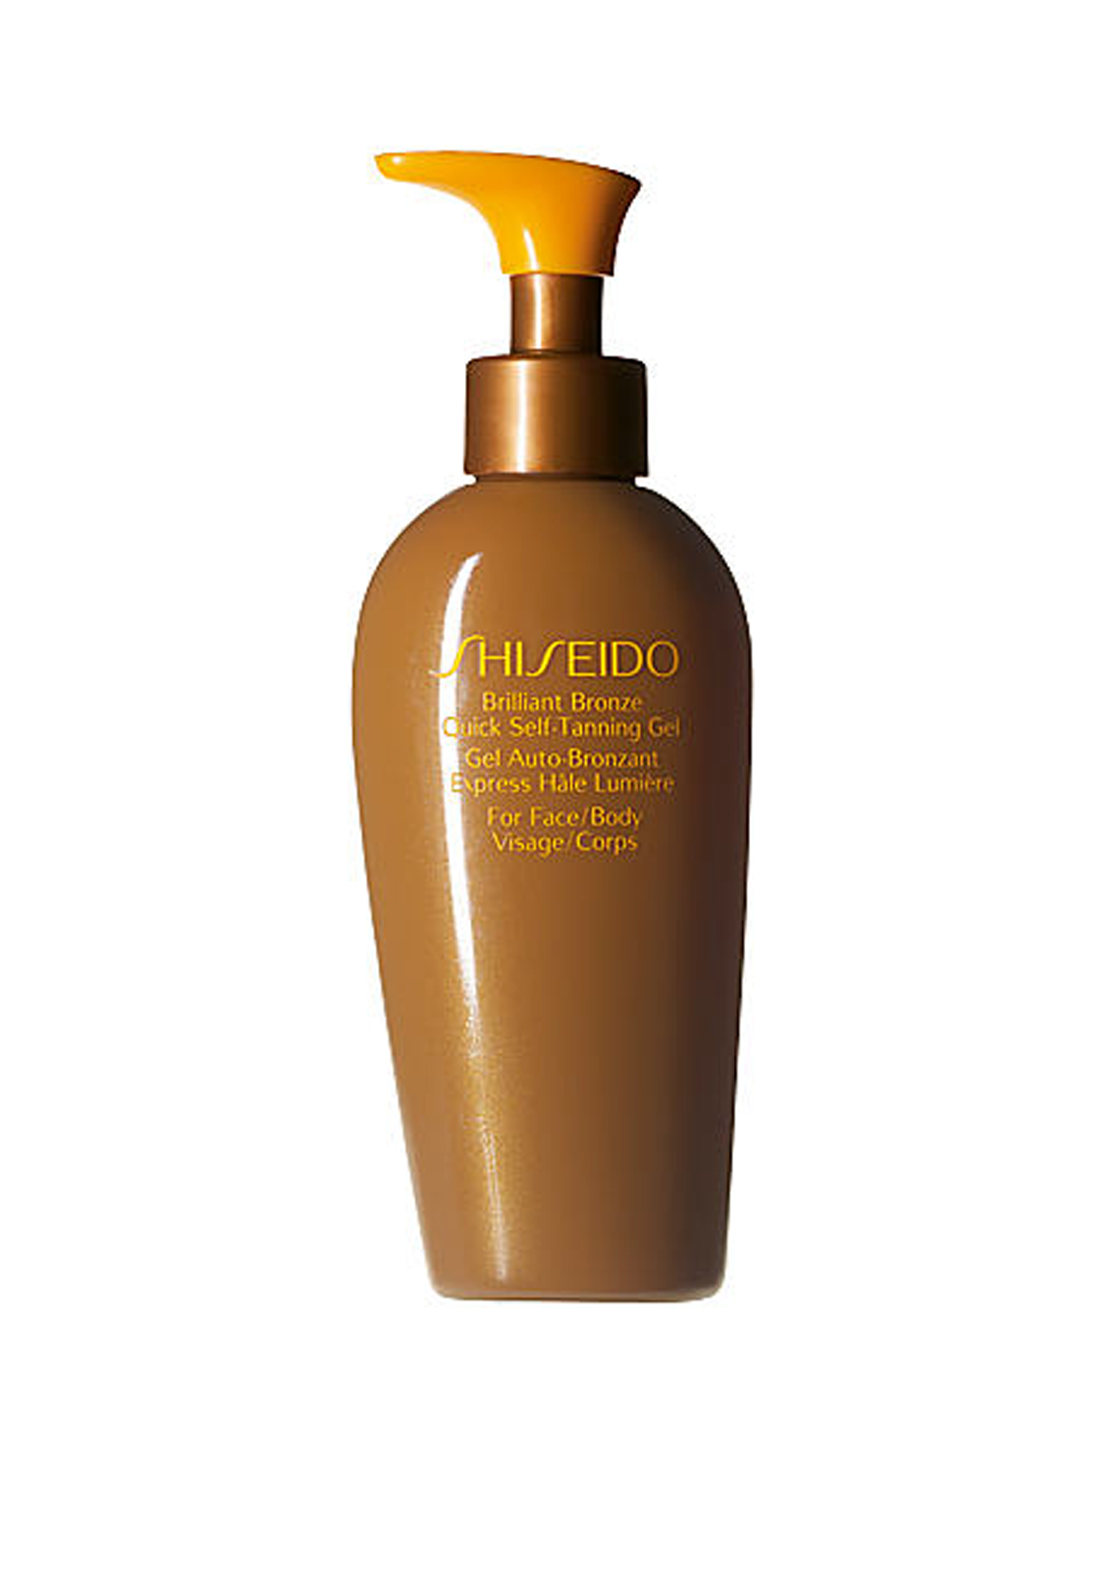 Shiseido Brilliant Bronze Quick Self-Tanning Gel, 150ml